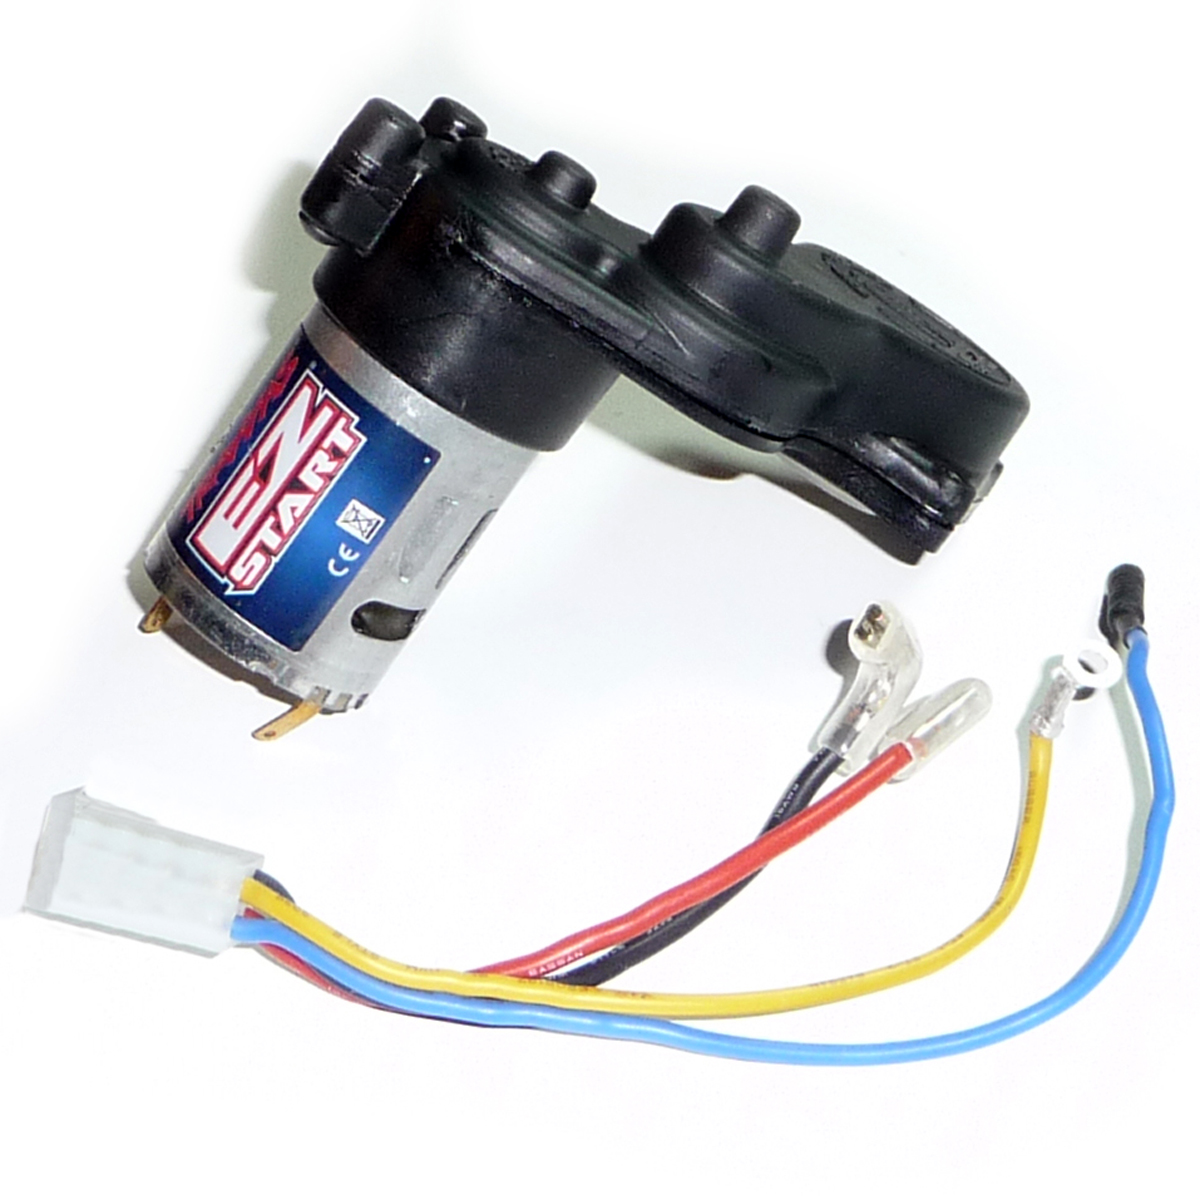 jato+ez+start traxxas jato 3 3 * ez start motor, pinion, gear set, cush drives Traxxas Jato 3.3 Hop-Ups at crackthecode.co